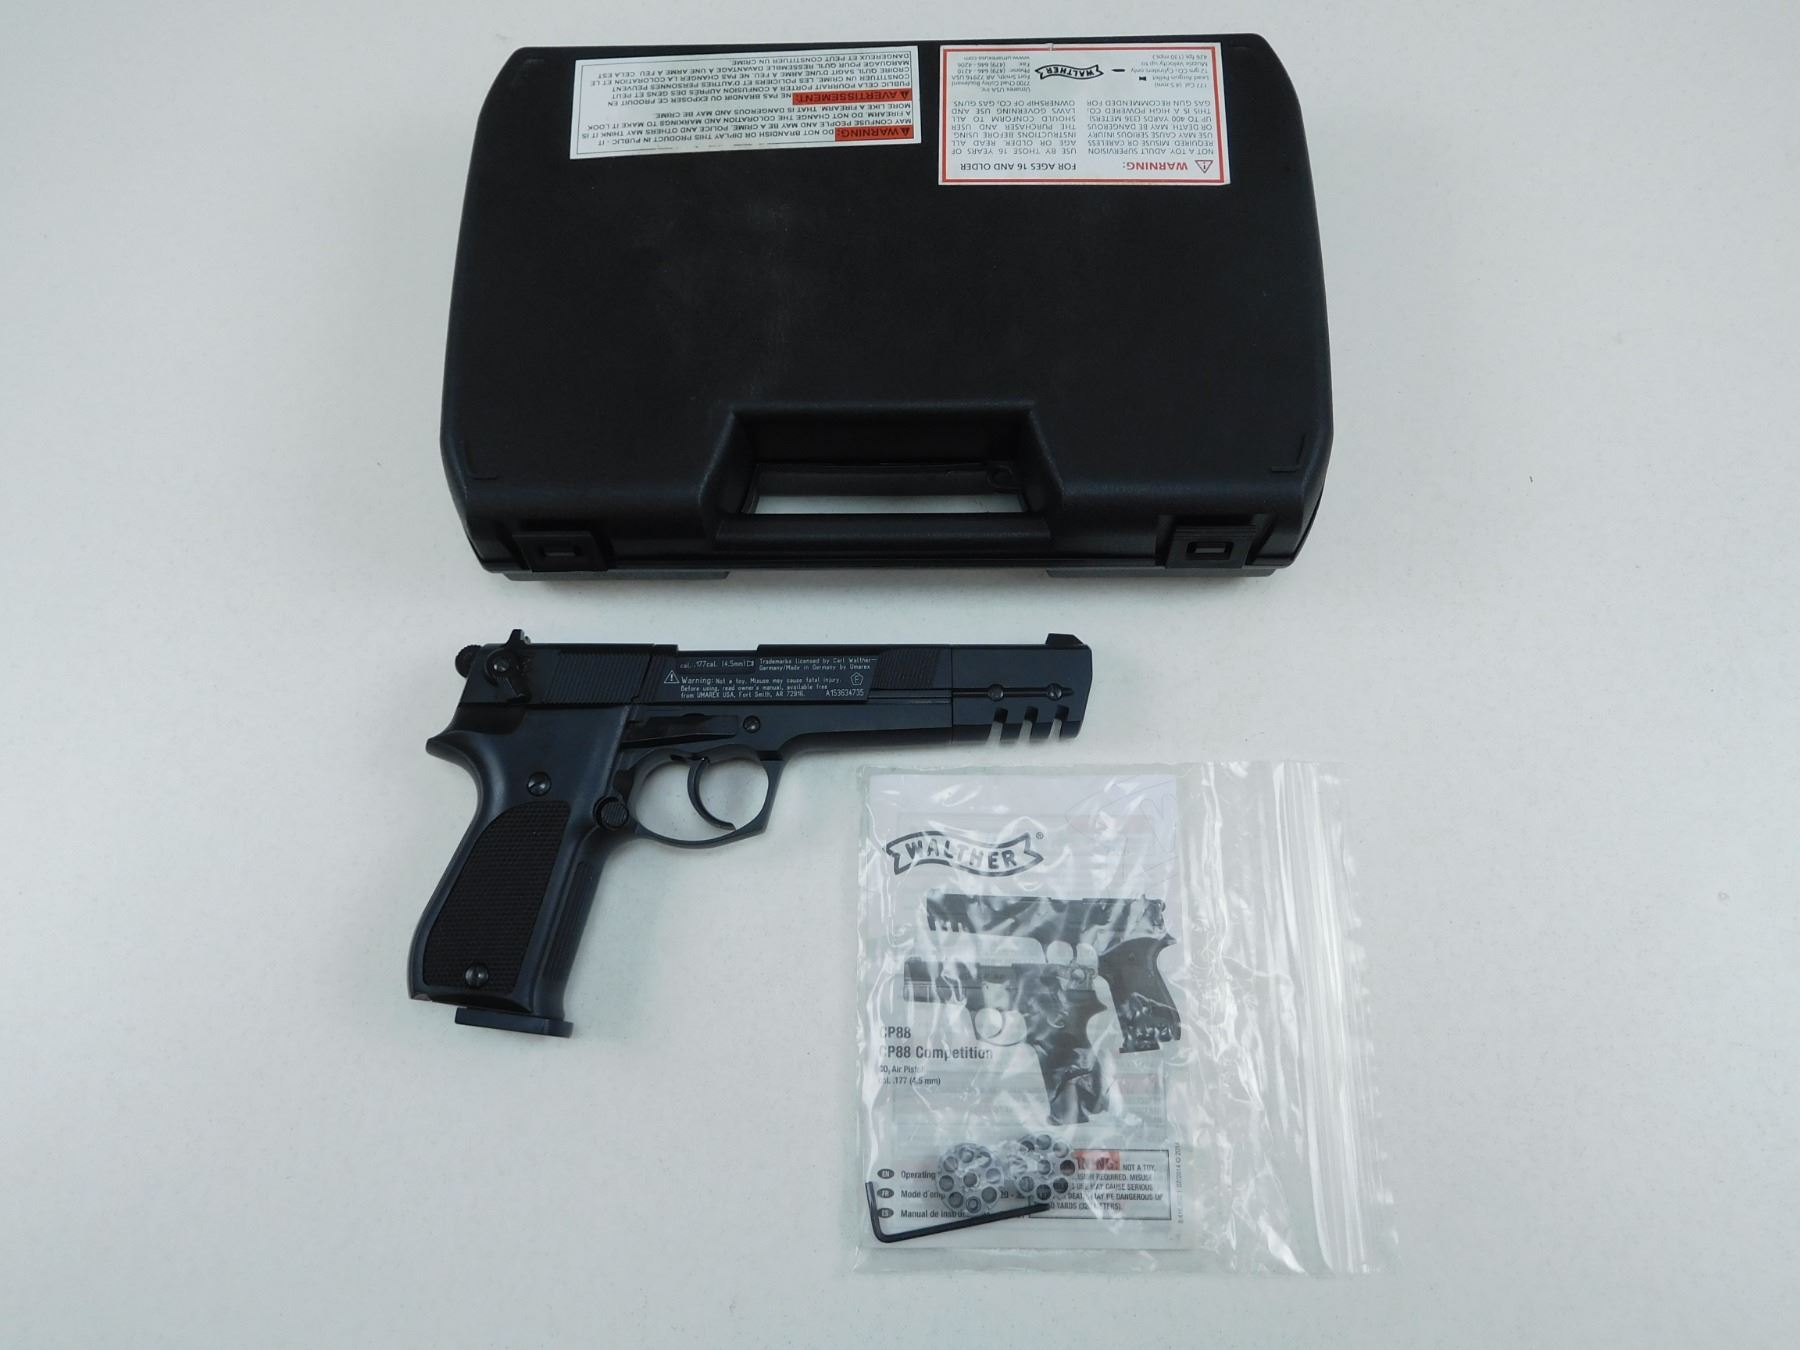 WALTHERS CP88 COMPETITION CO2 AIR PISTOL